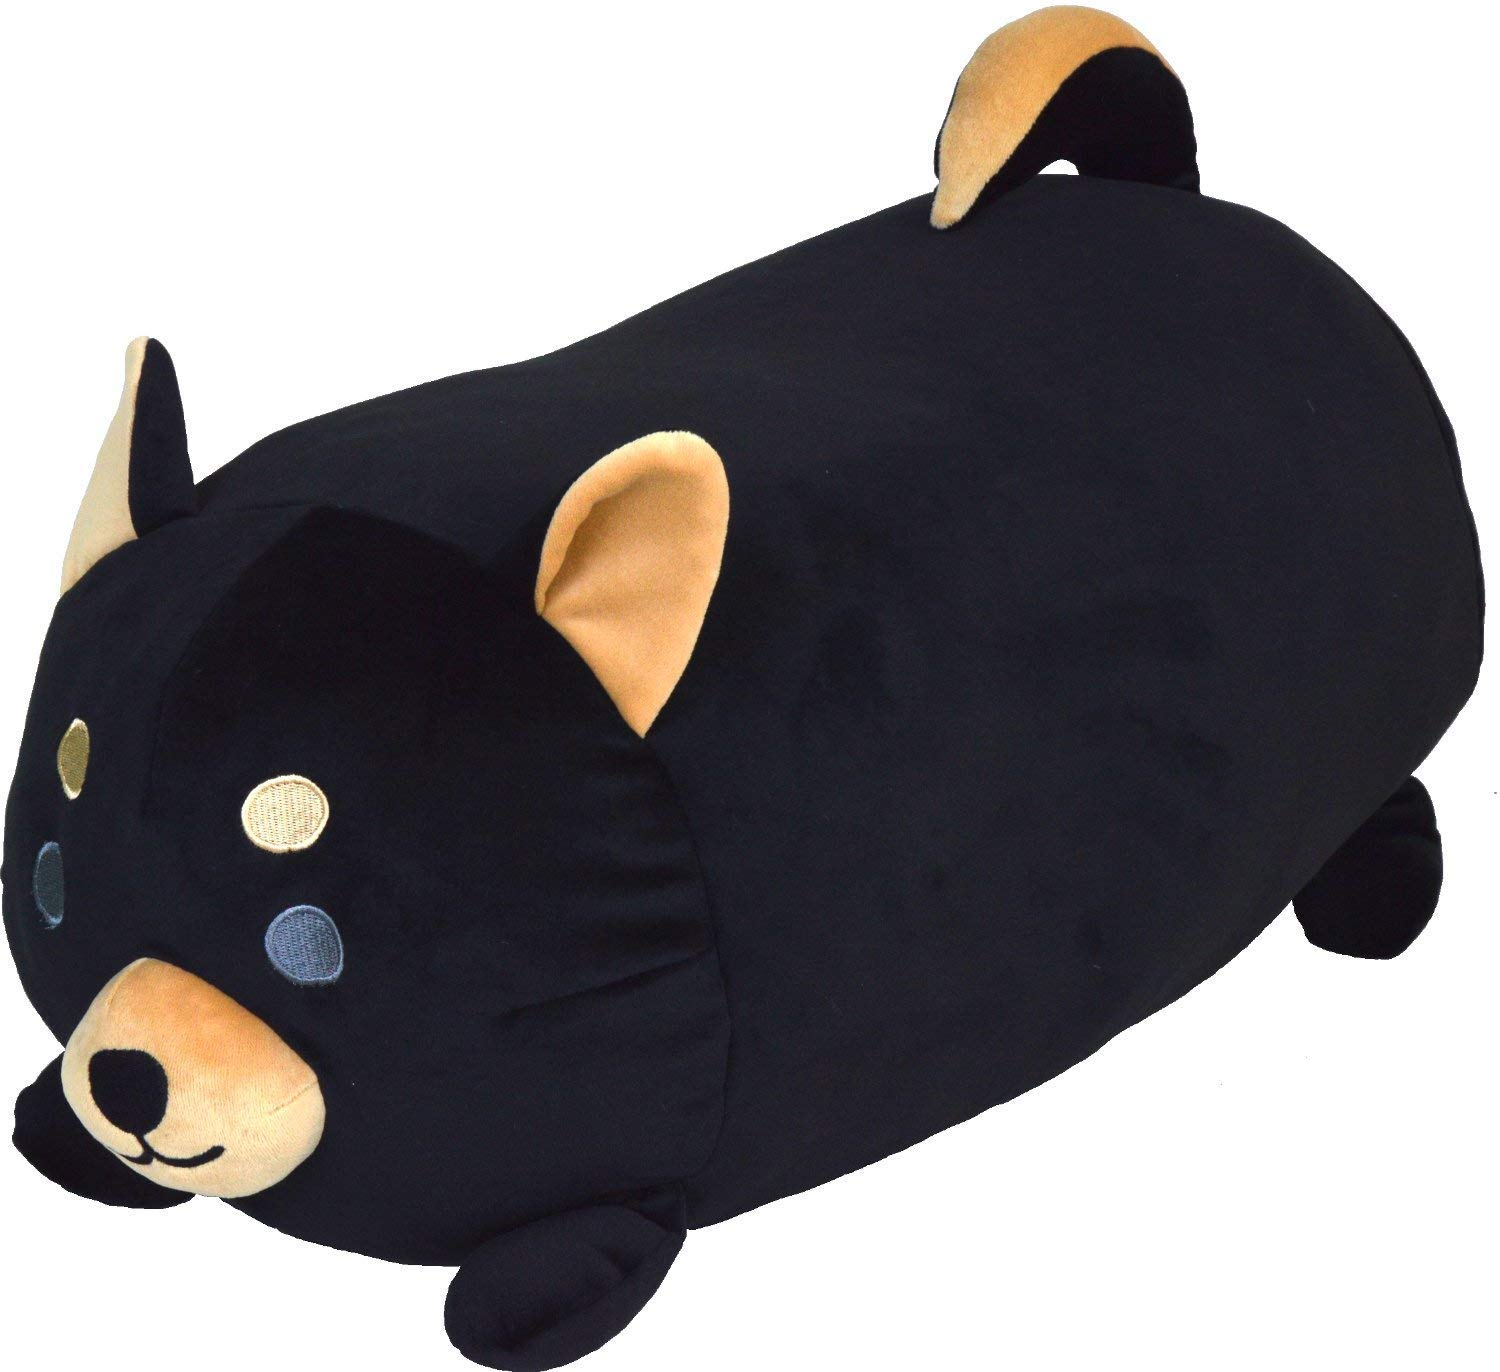 Gentie Animals Body Pillow Dog ''Black Shiba Dog'' G-6521BK